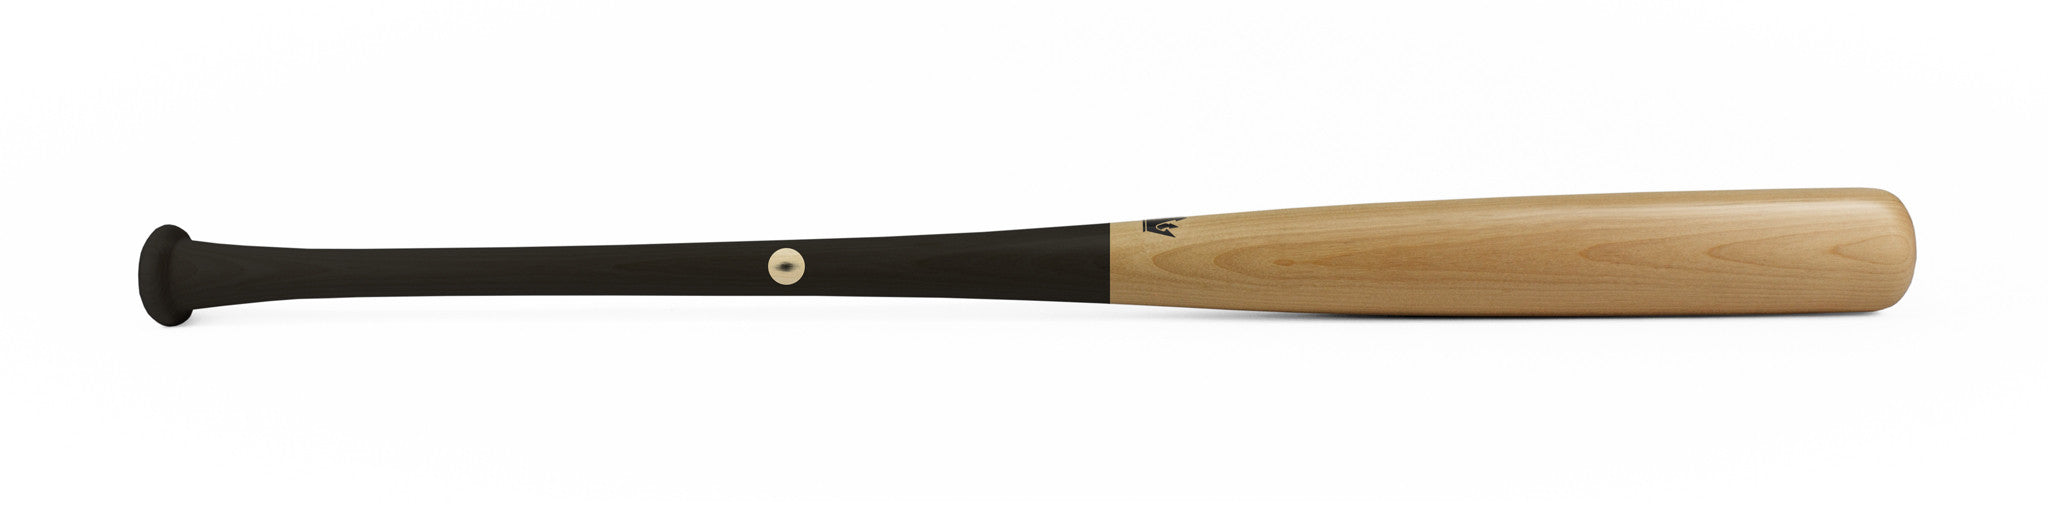 Wood bat - Birch model 141-P Black Dip - 17